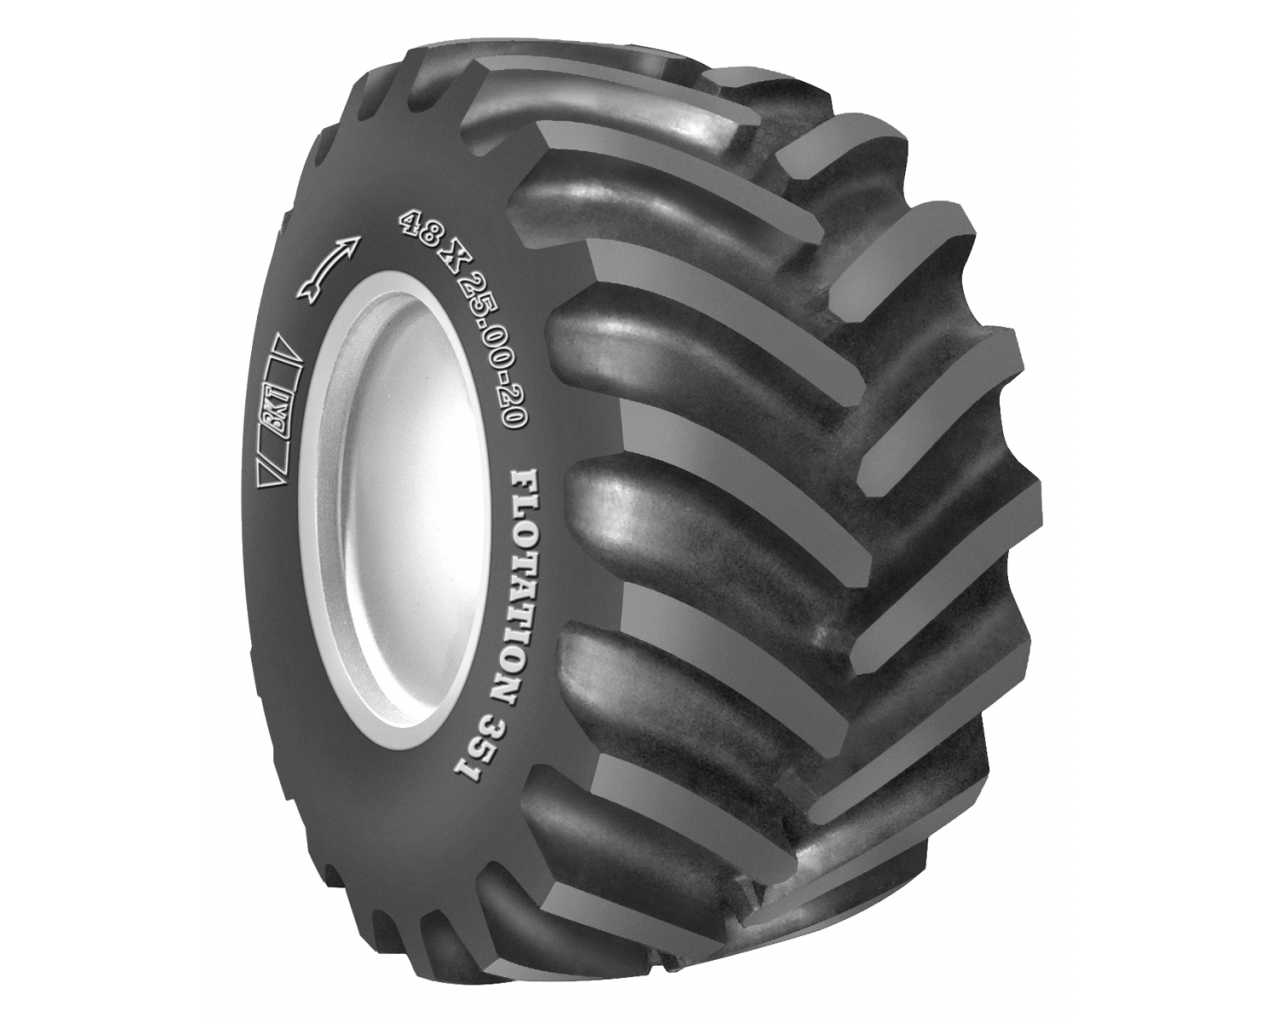 48/31X20 BKT FL-351 12PR TL - Buy online at Agrigear, Ireland's tyre and wheel specialists